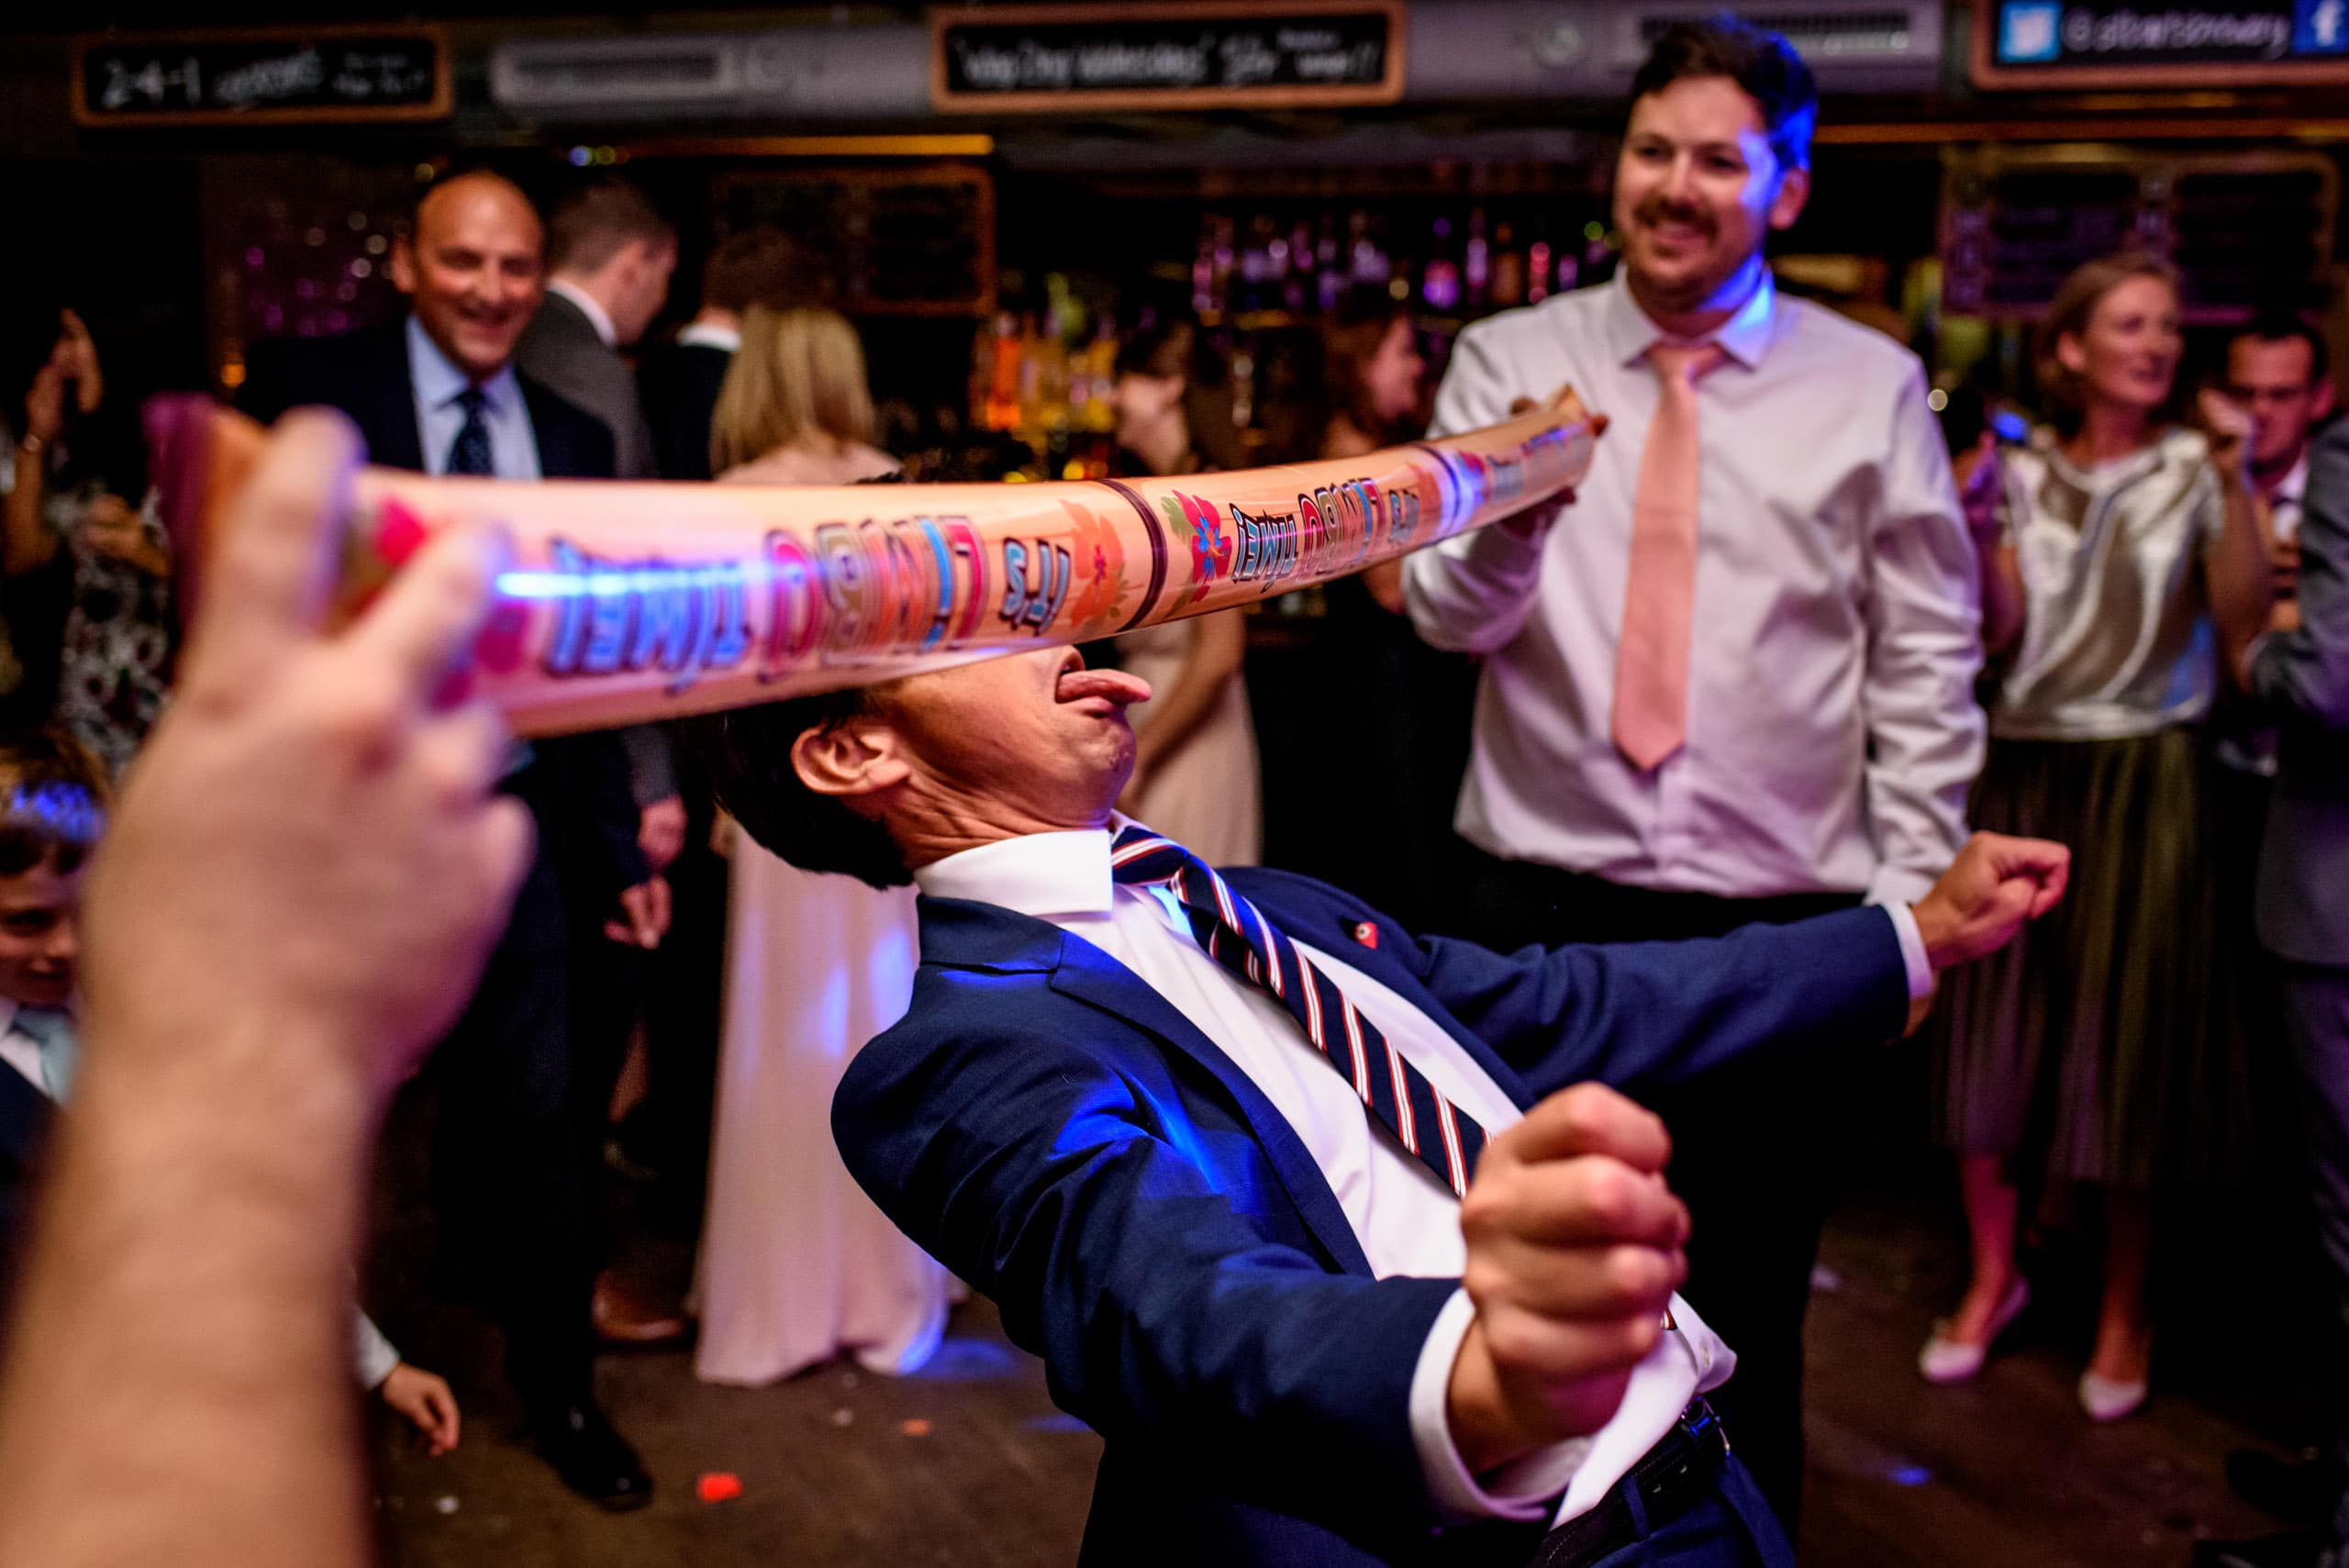 a wedding doing limbo under an inflatable limbo stick on the dance floor